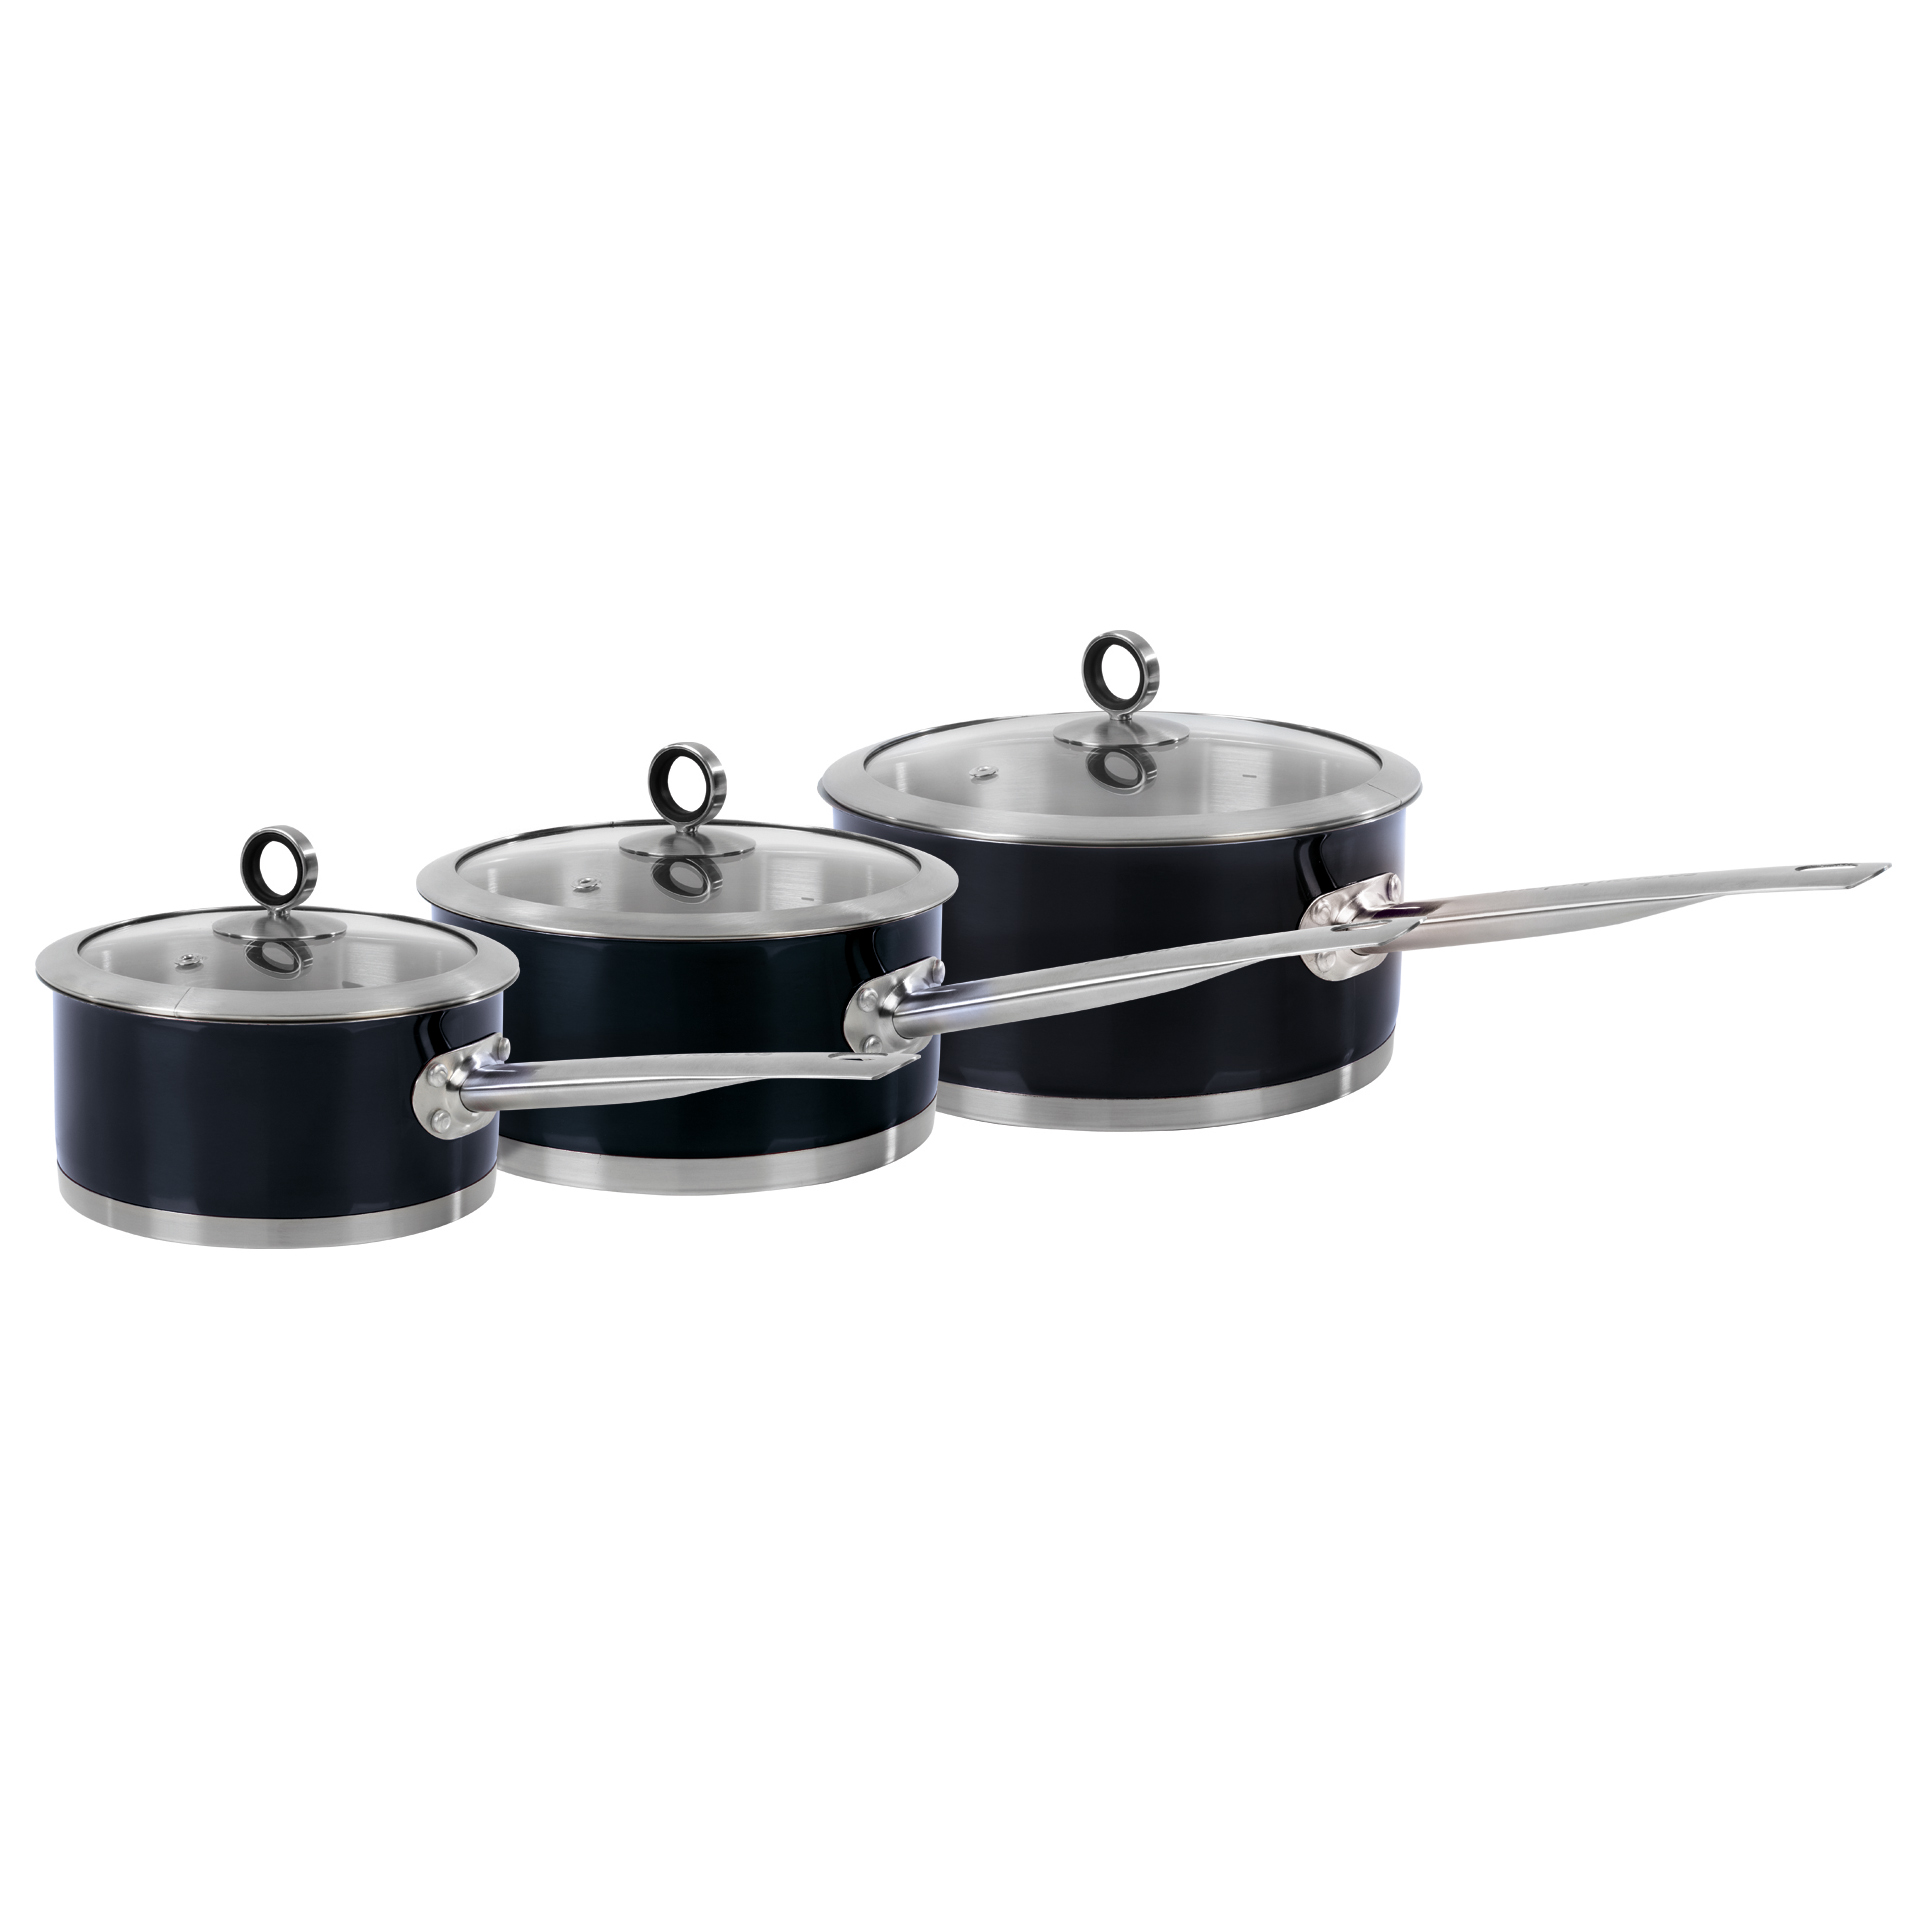 Morphy Richards Pots And Pans: MORPHY RICHARDS 3 PIECE STAINLESS STEEL GLASS LID KITCHEN